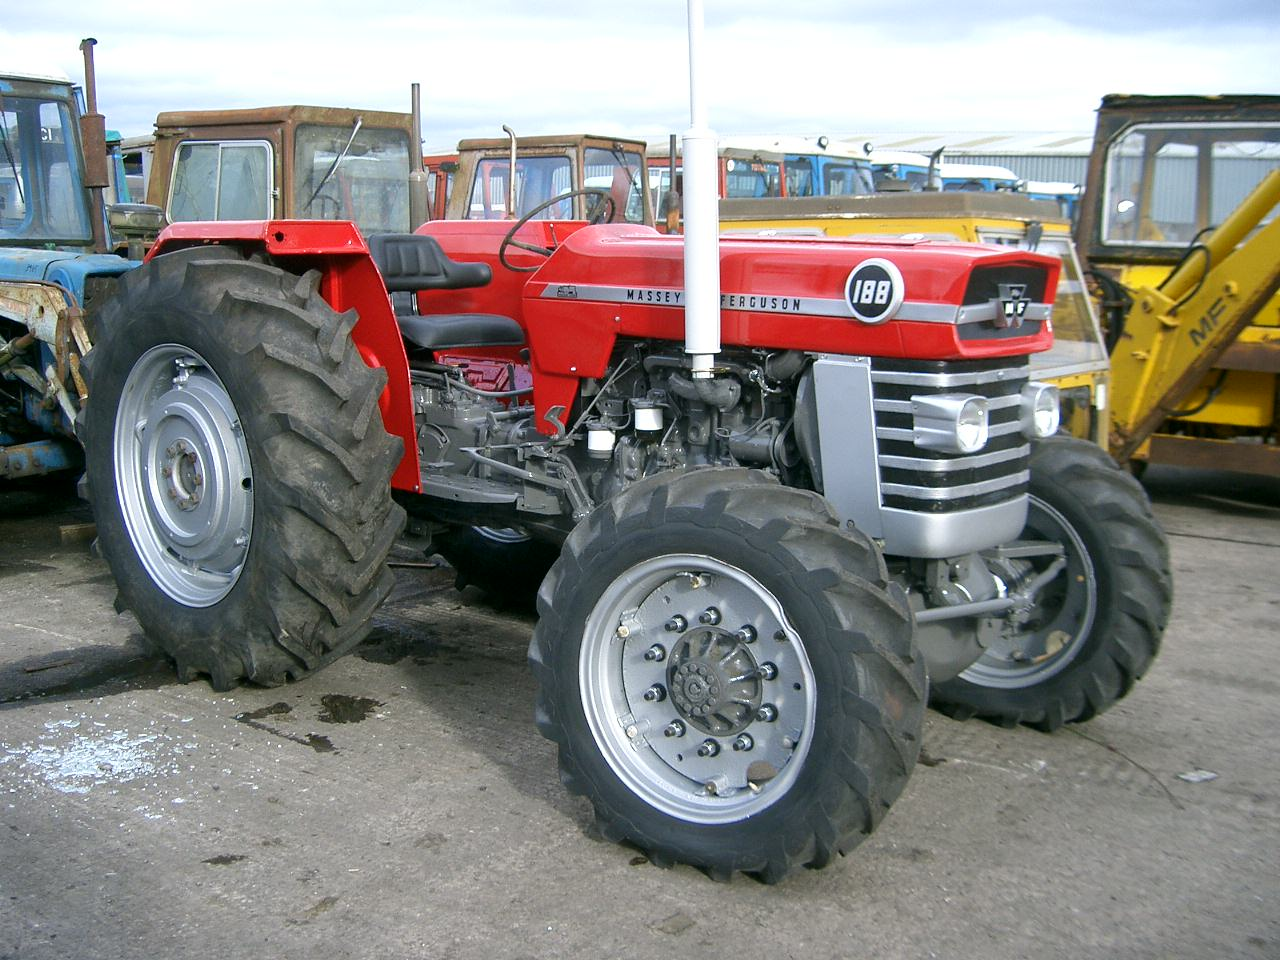 Massey ferguson 165 photo - 2